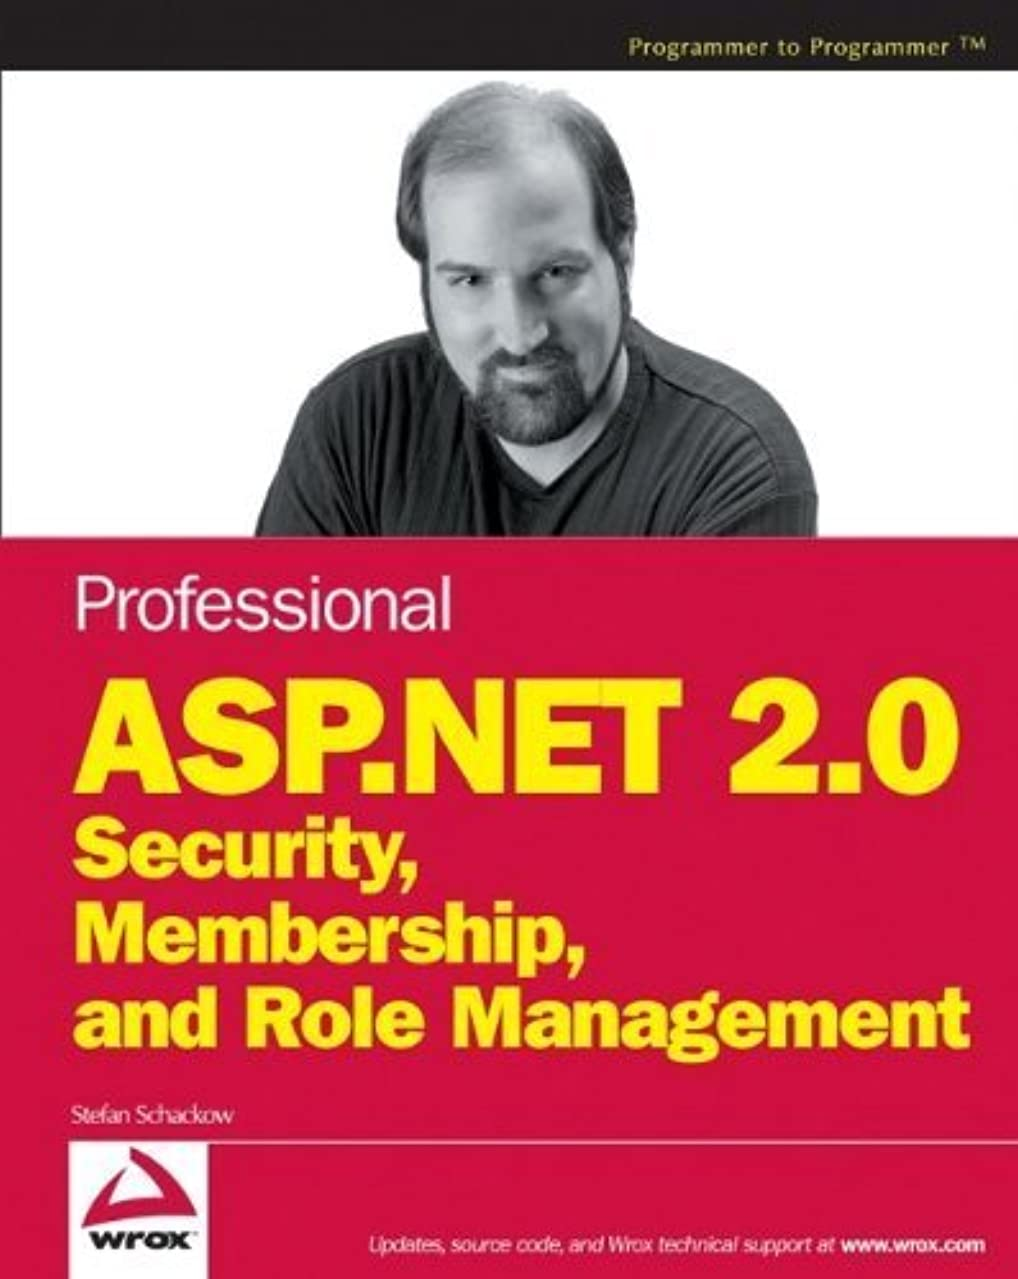 Professional ASP.NET 2.0 Security, Membership, and Role Management by Stefan Schackow (2006-01-31)